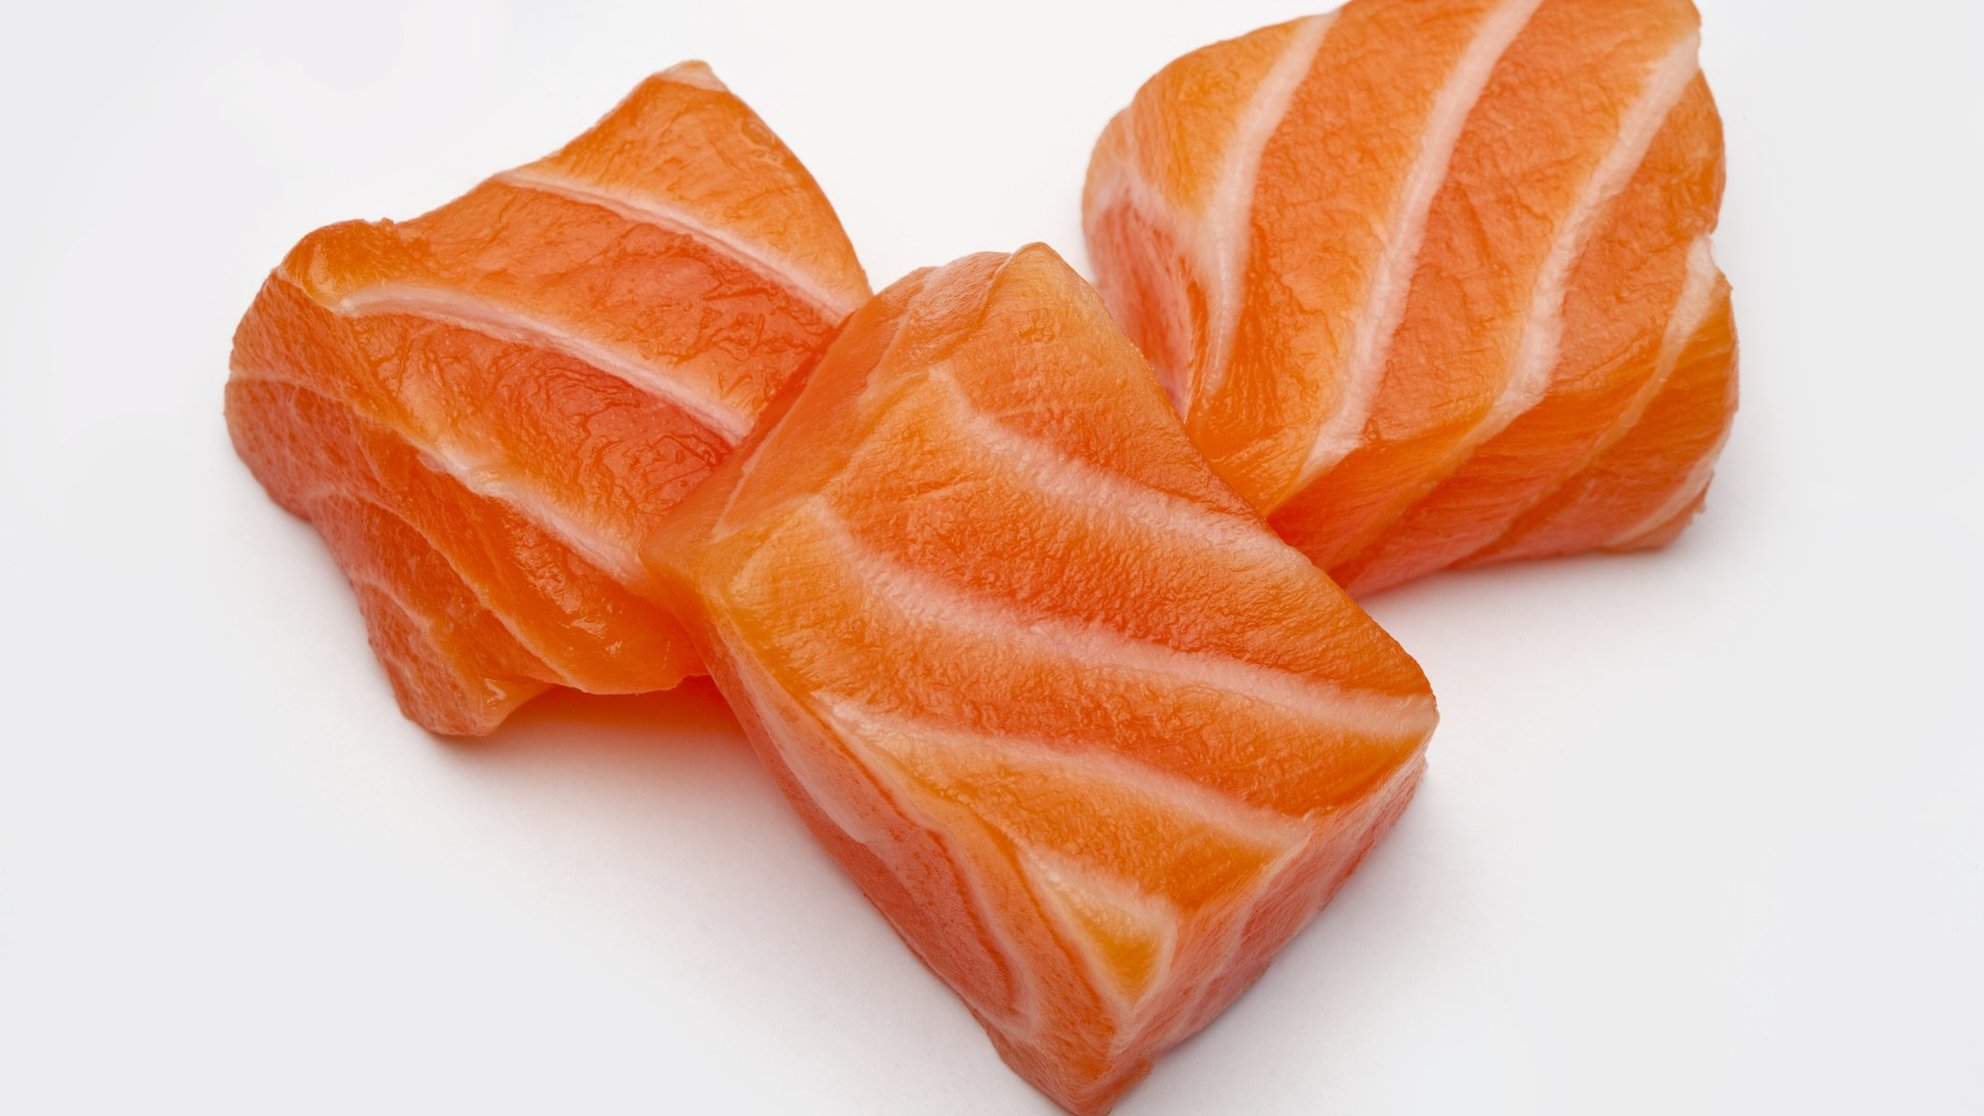 Salmon in U.S. May Be Infected With Japanese Tapeworm, Study Says